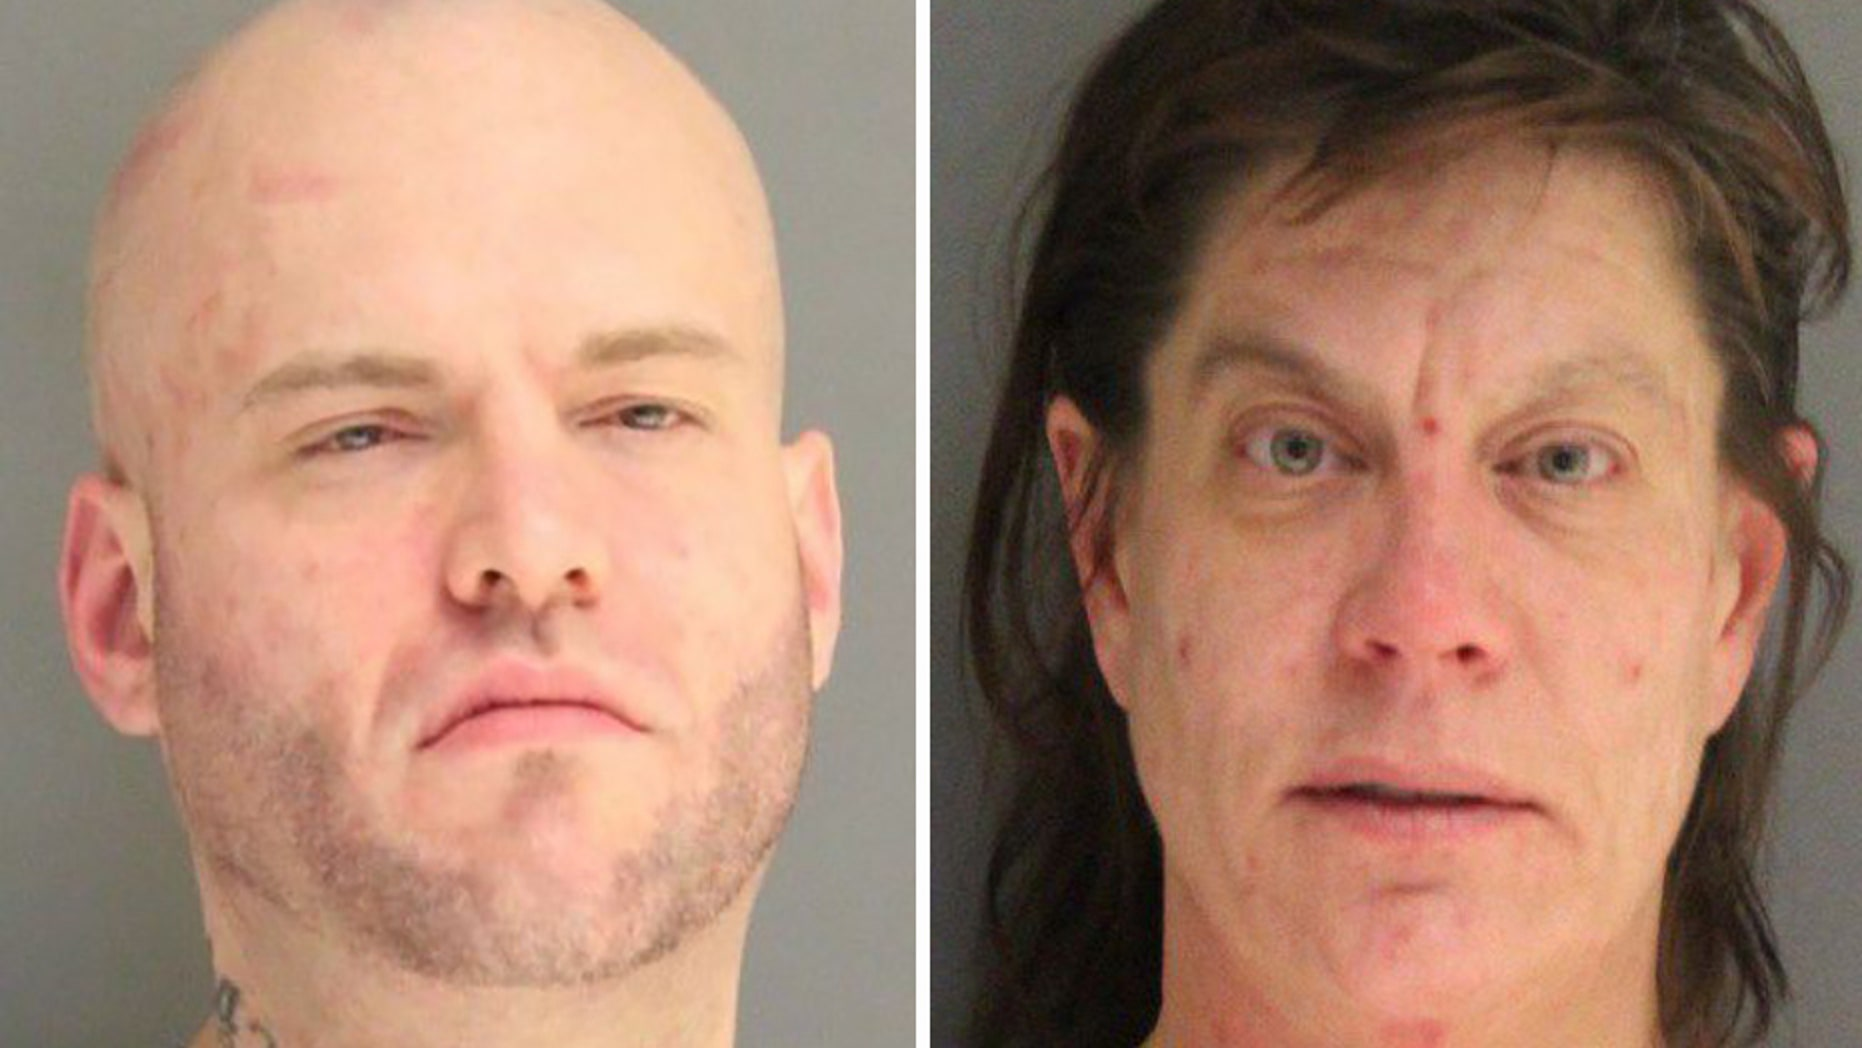 Christopher McDowell, 34, and April Wright, 48, accidentally turned themselves in after walking into police headquarters.